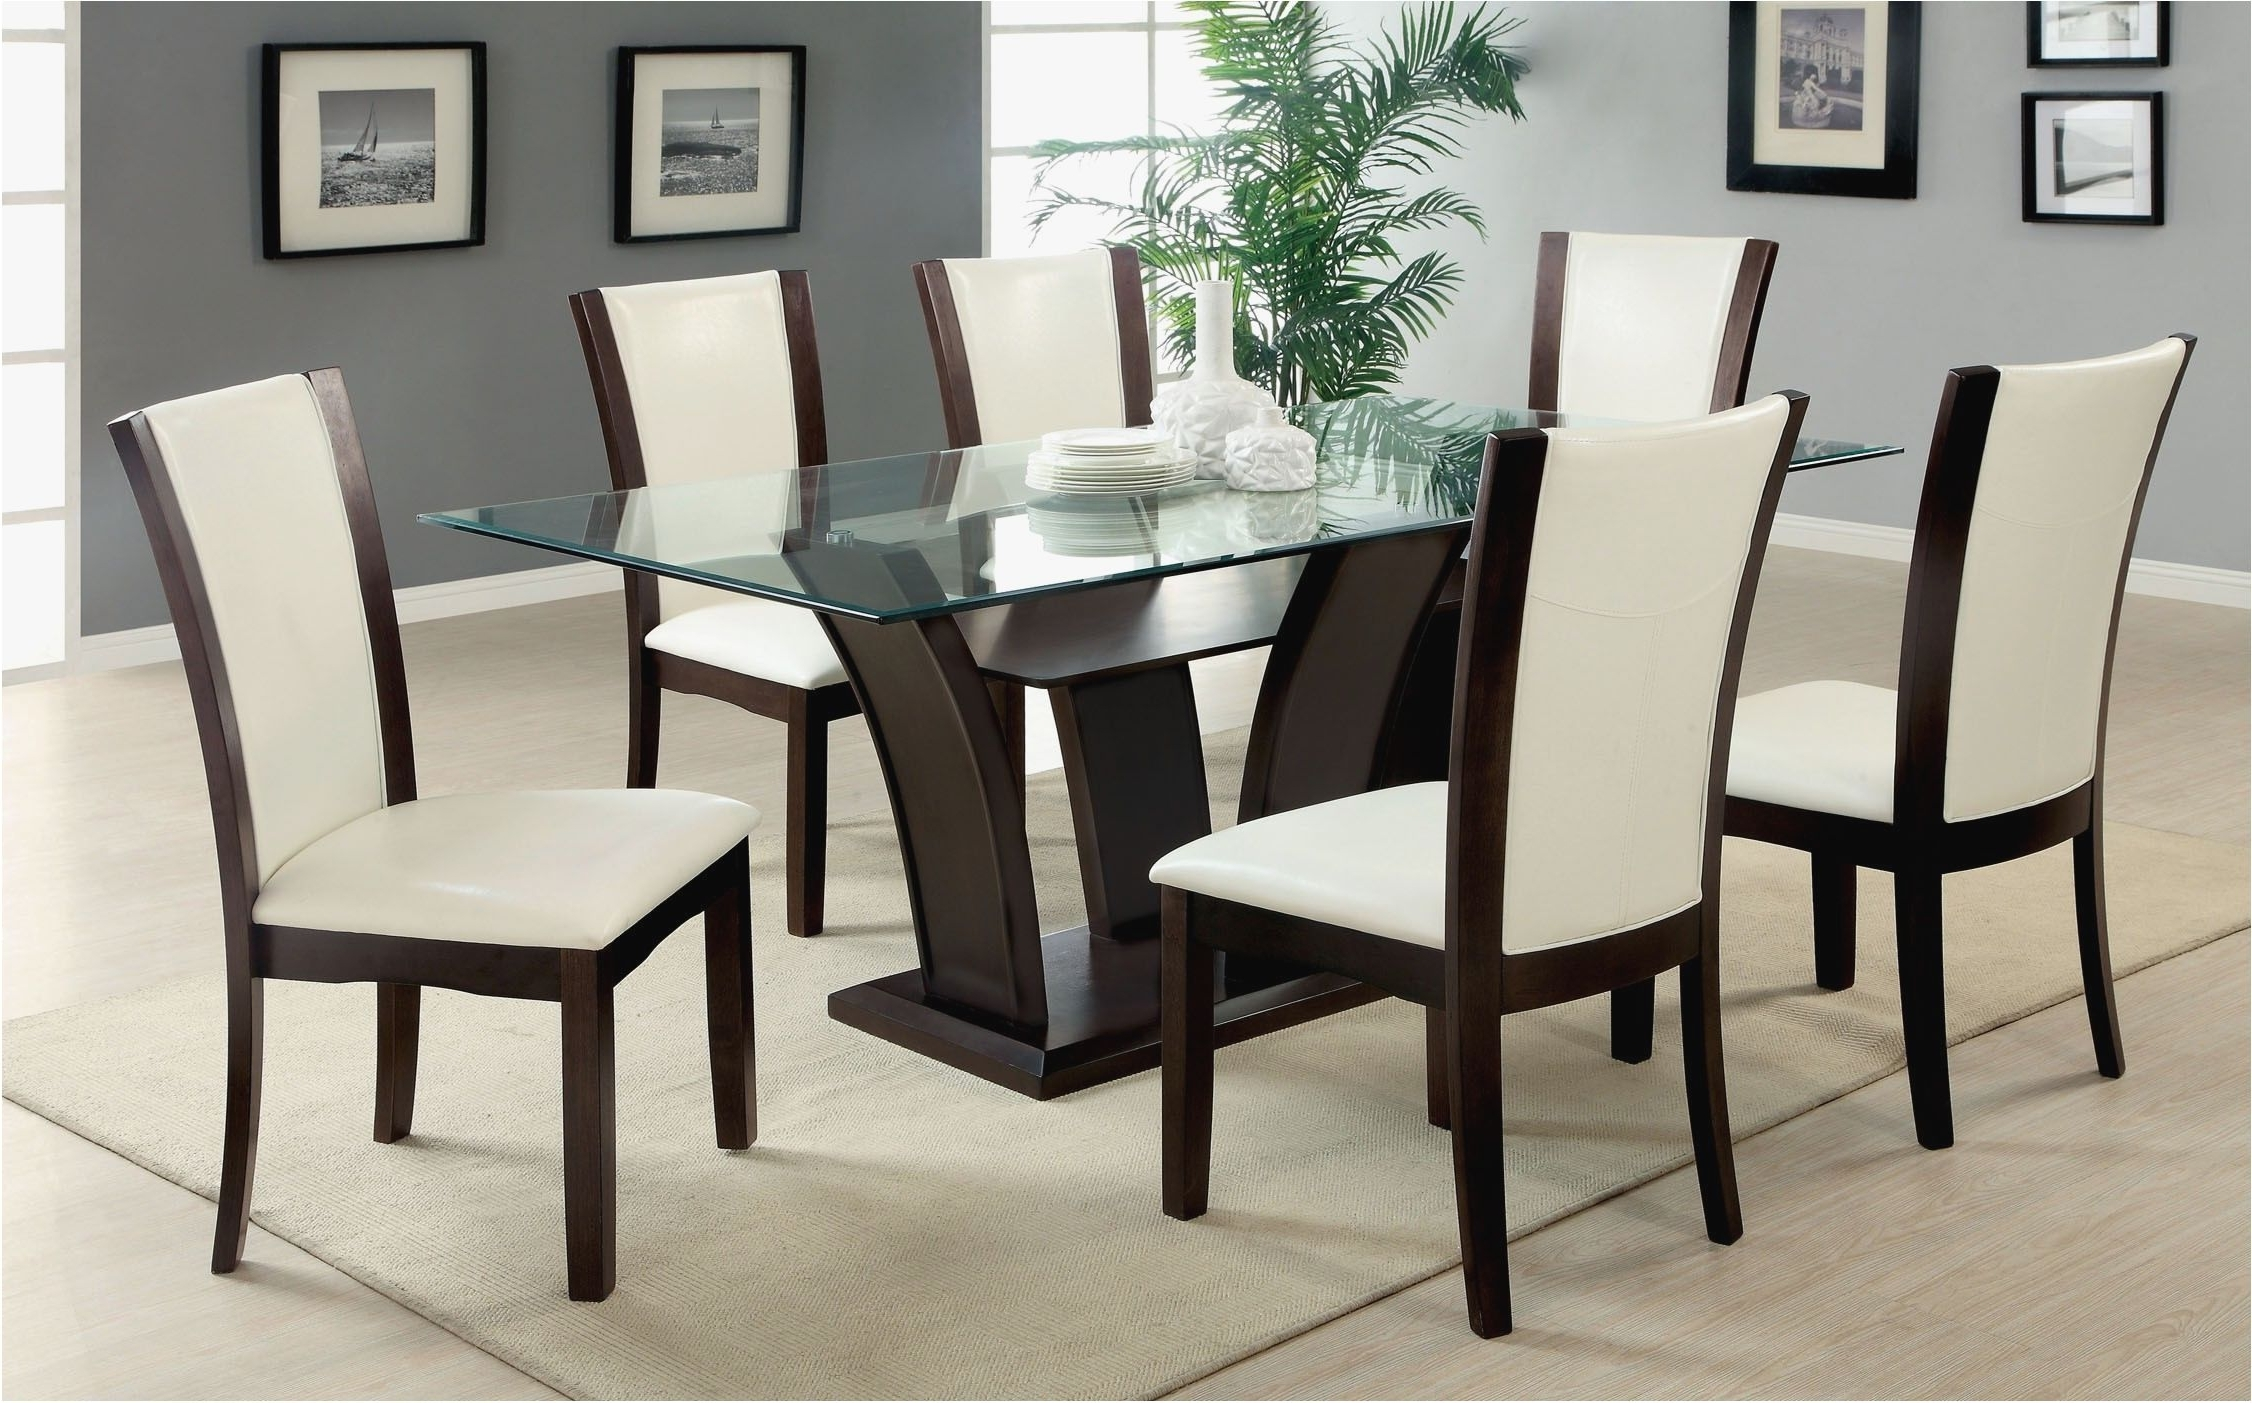 Spectacular 6 Chair Dining Table Inspiration 2018 Dining Table Set 6 Intended For Most Recently Released Dining Tables With 6 Chairs (View 22 of 25)